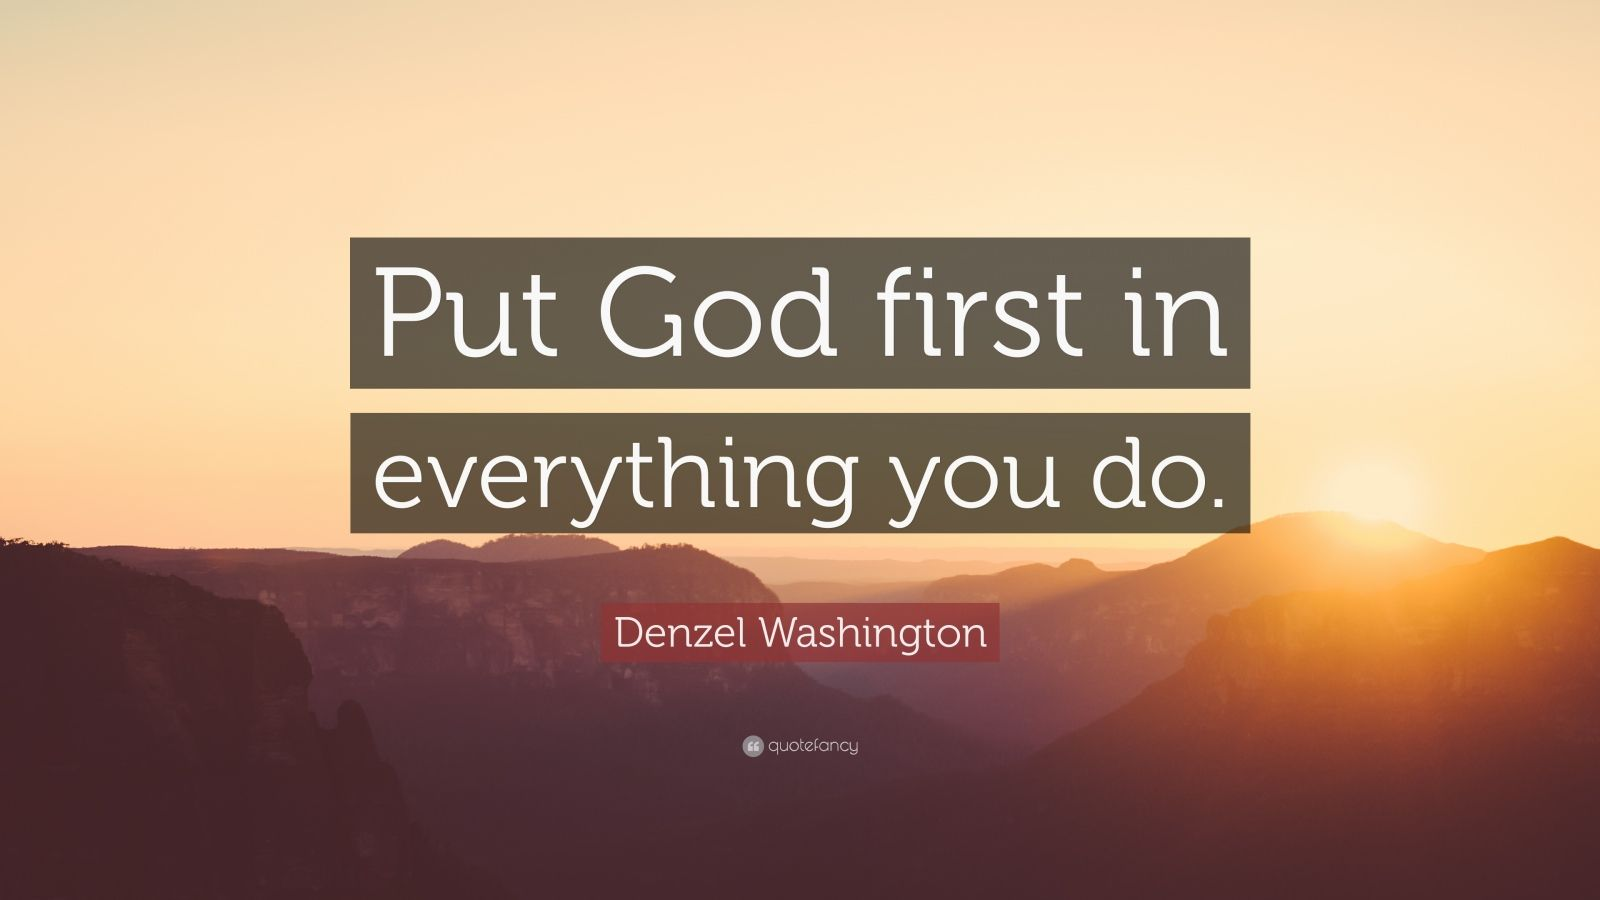 Business Success Quotes Wallpaper Denzel Washington Quote Put God First In Everything You